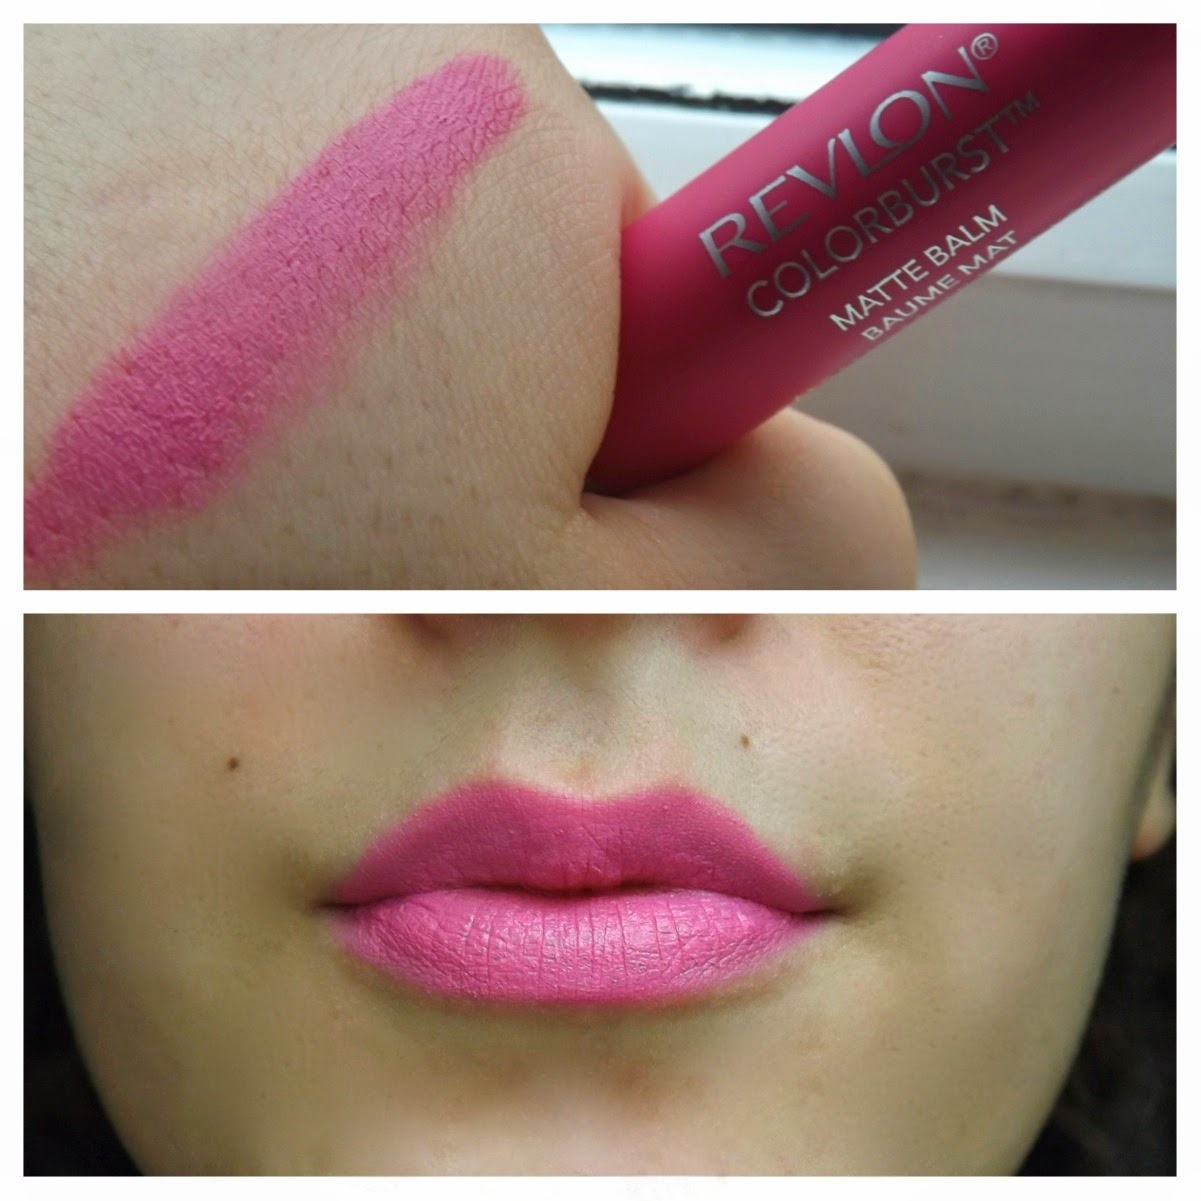 Revlon ColourBurst Balm 220